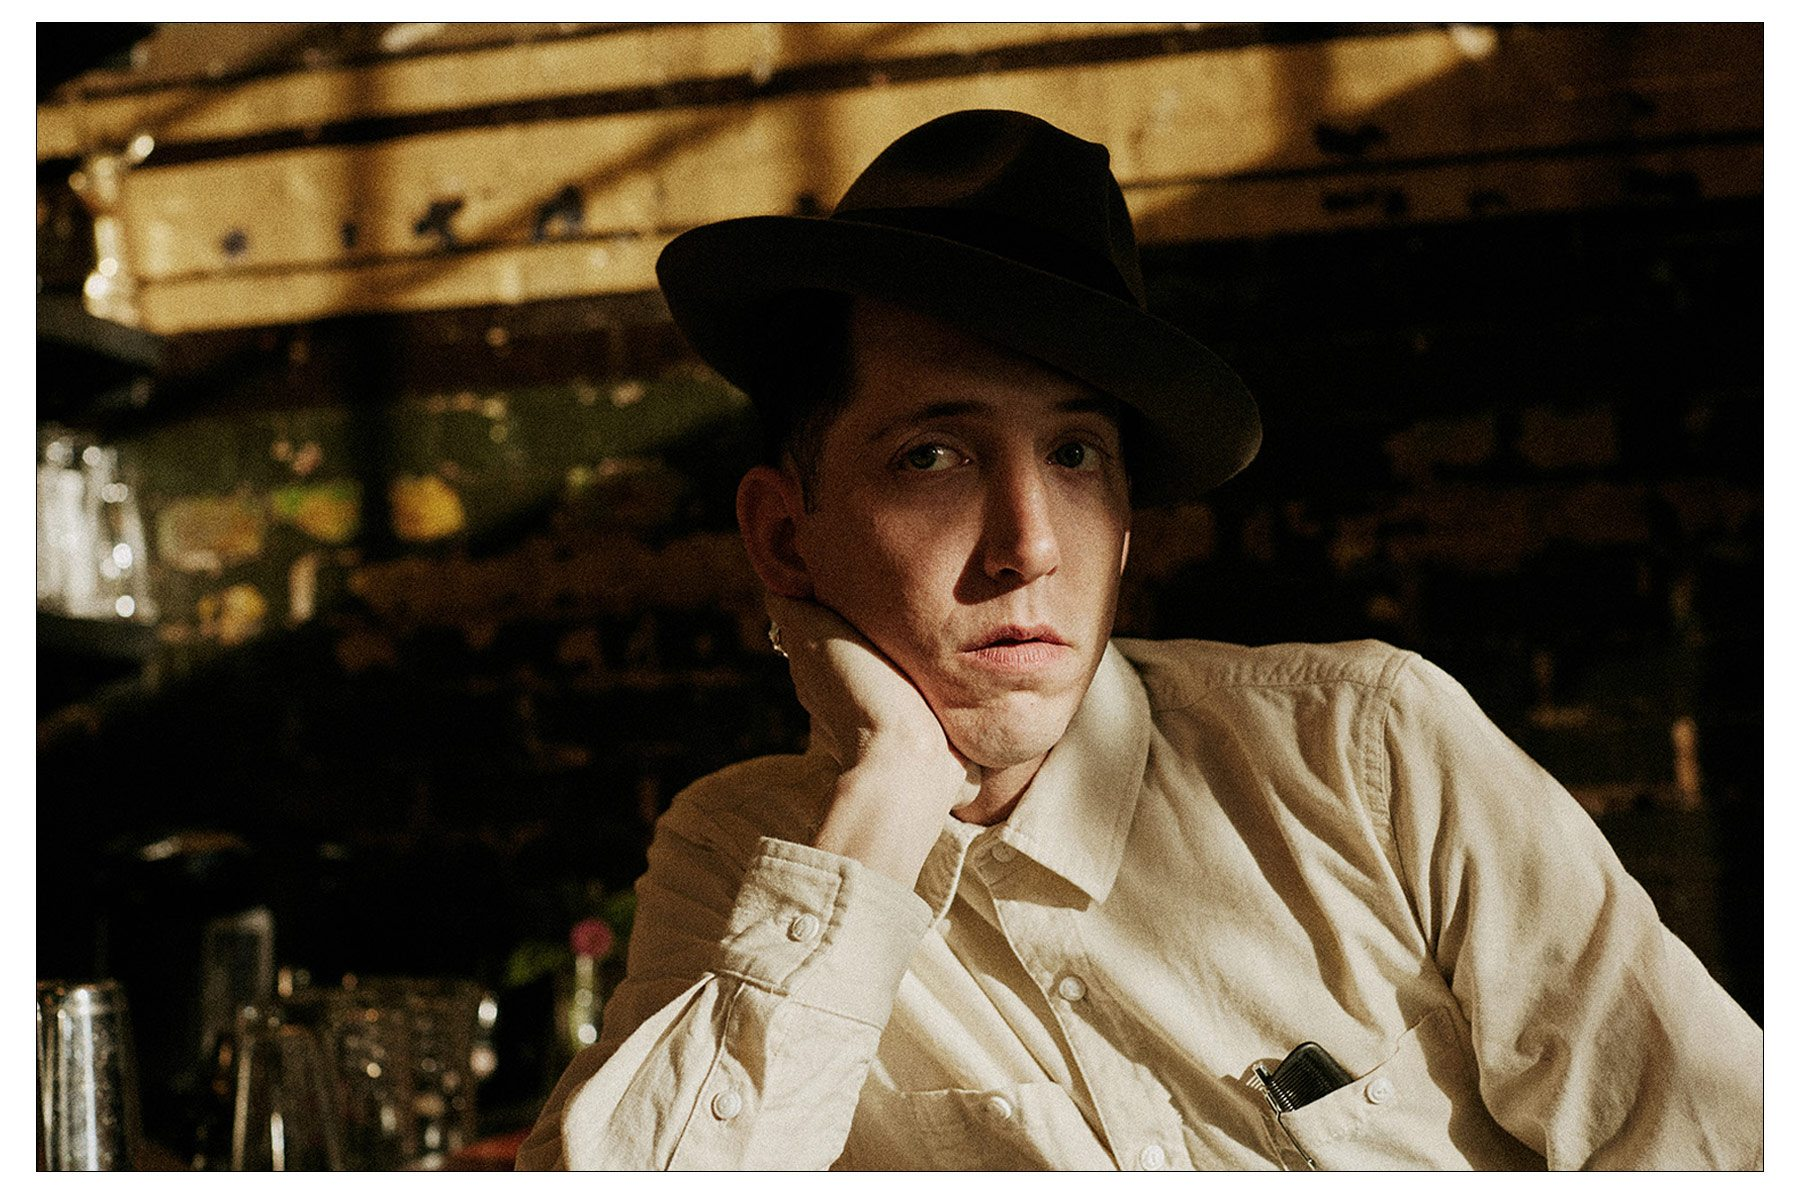 Pokey LaFarge photographed by Noah Sahady in his clothing collaboration with Knickerbocker Mfg. Co. Ponyboy magazine NY.